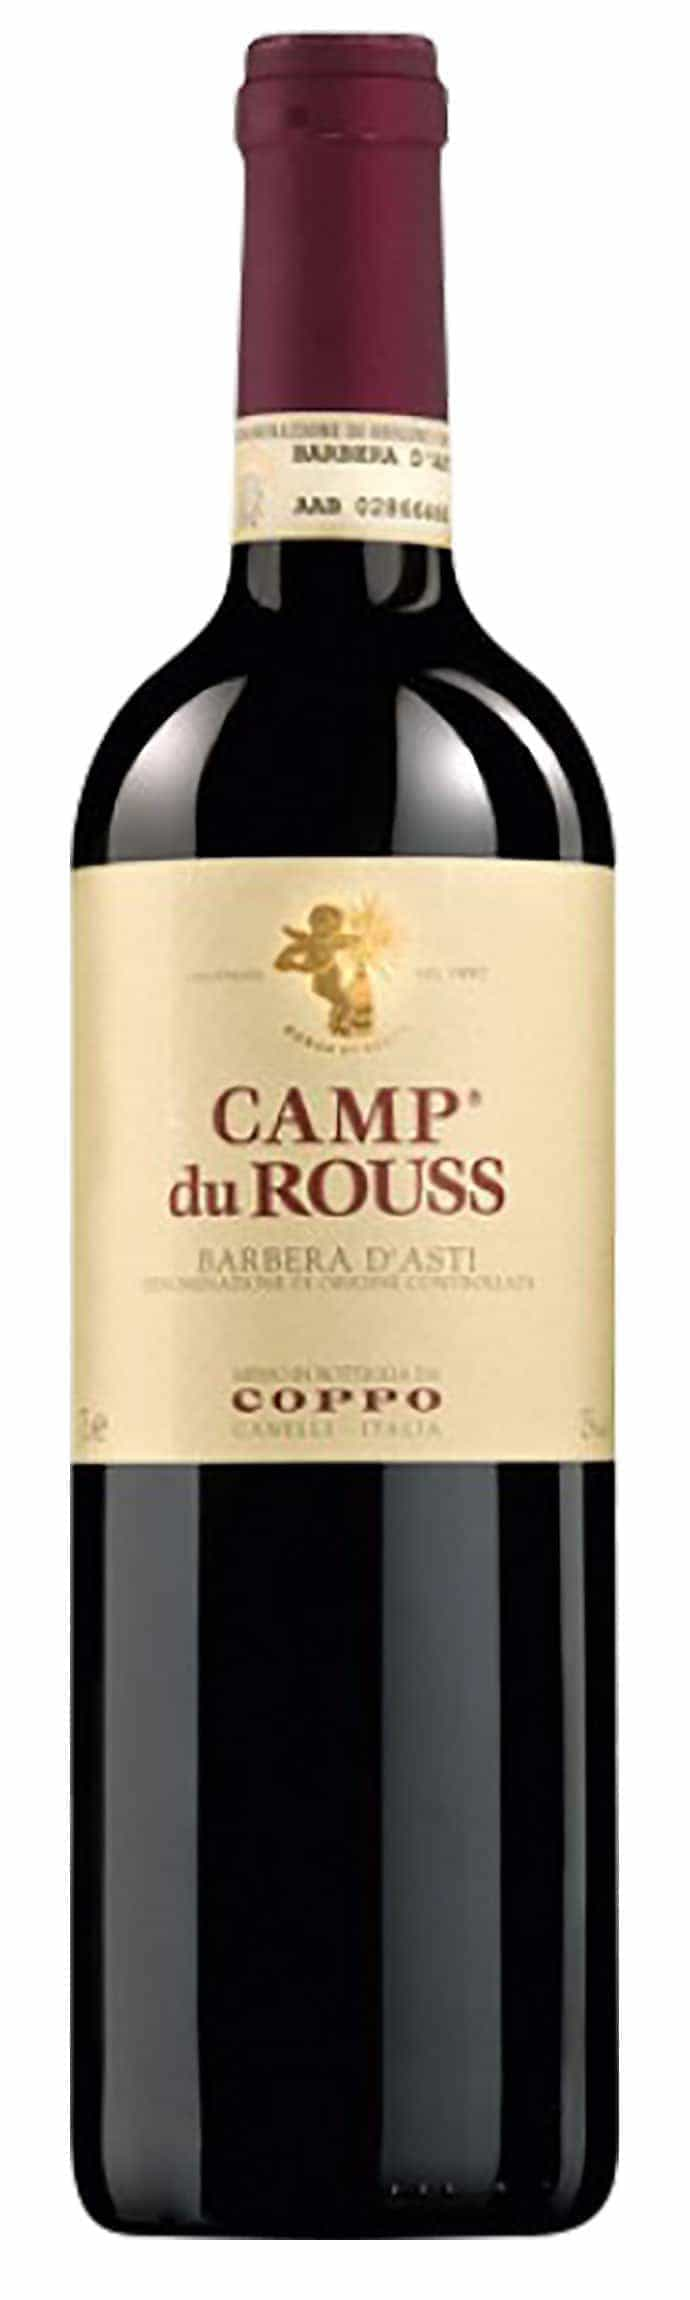 Coppo Camp du Rouss Barbera d'Asti 2010